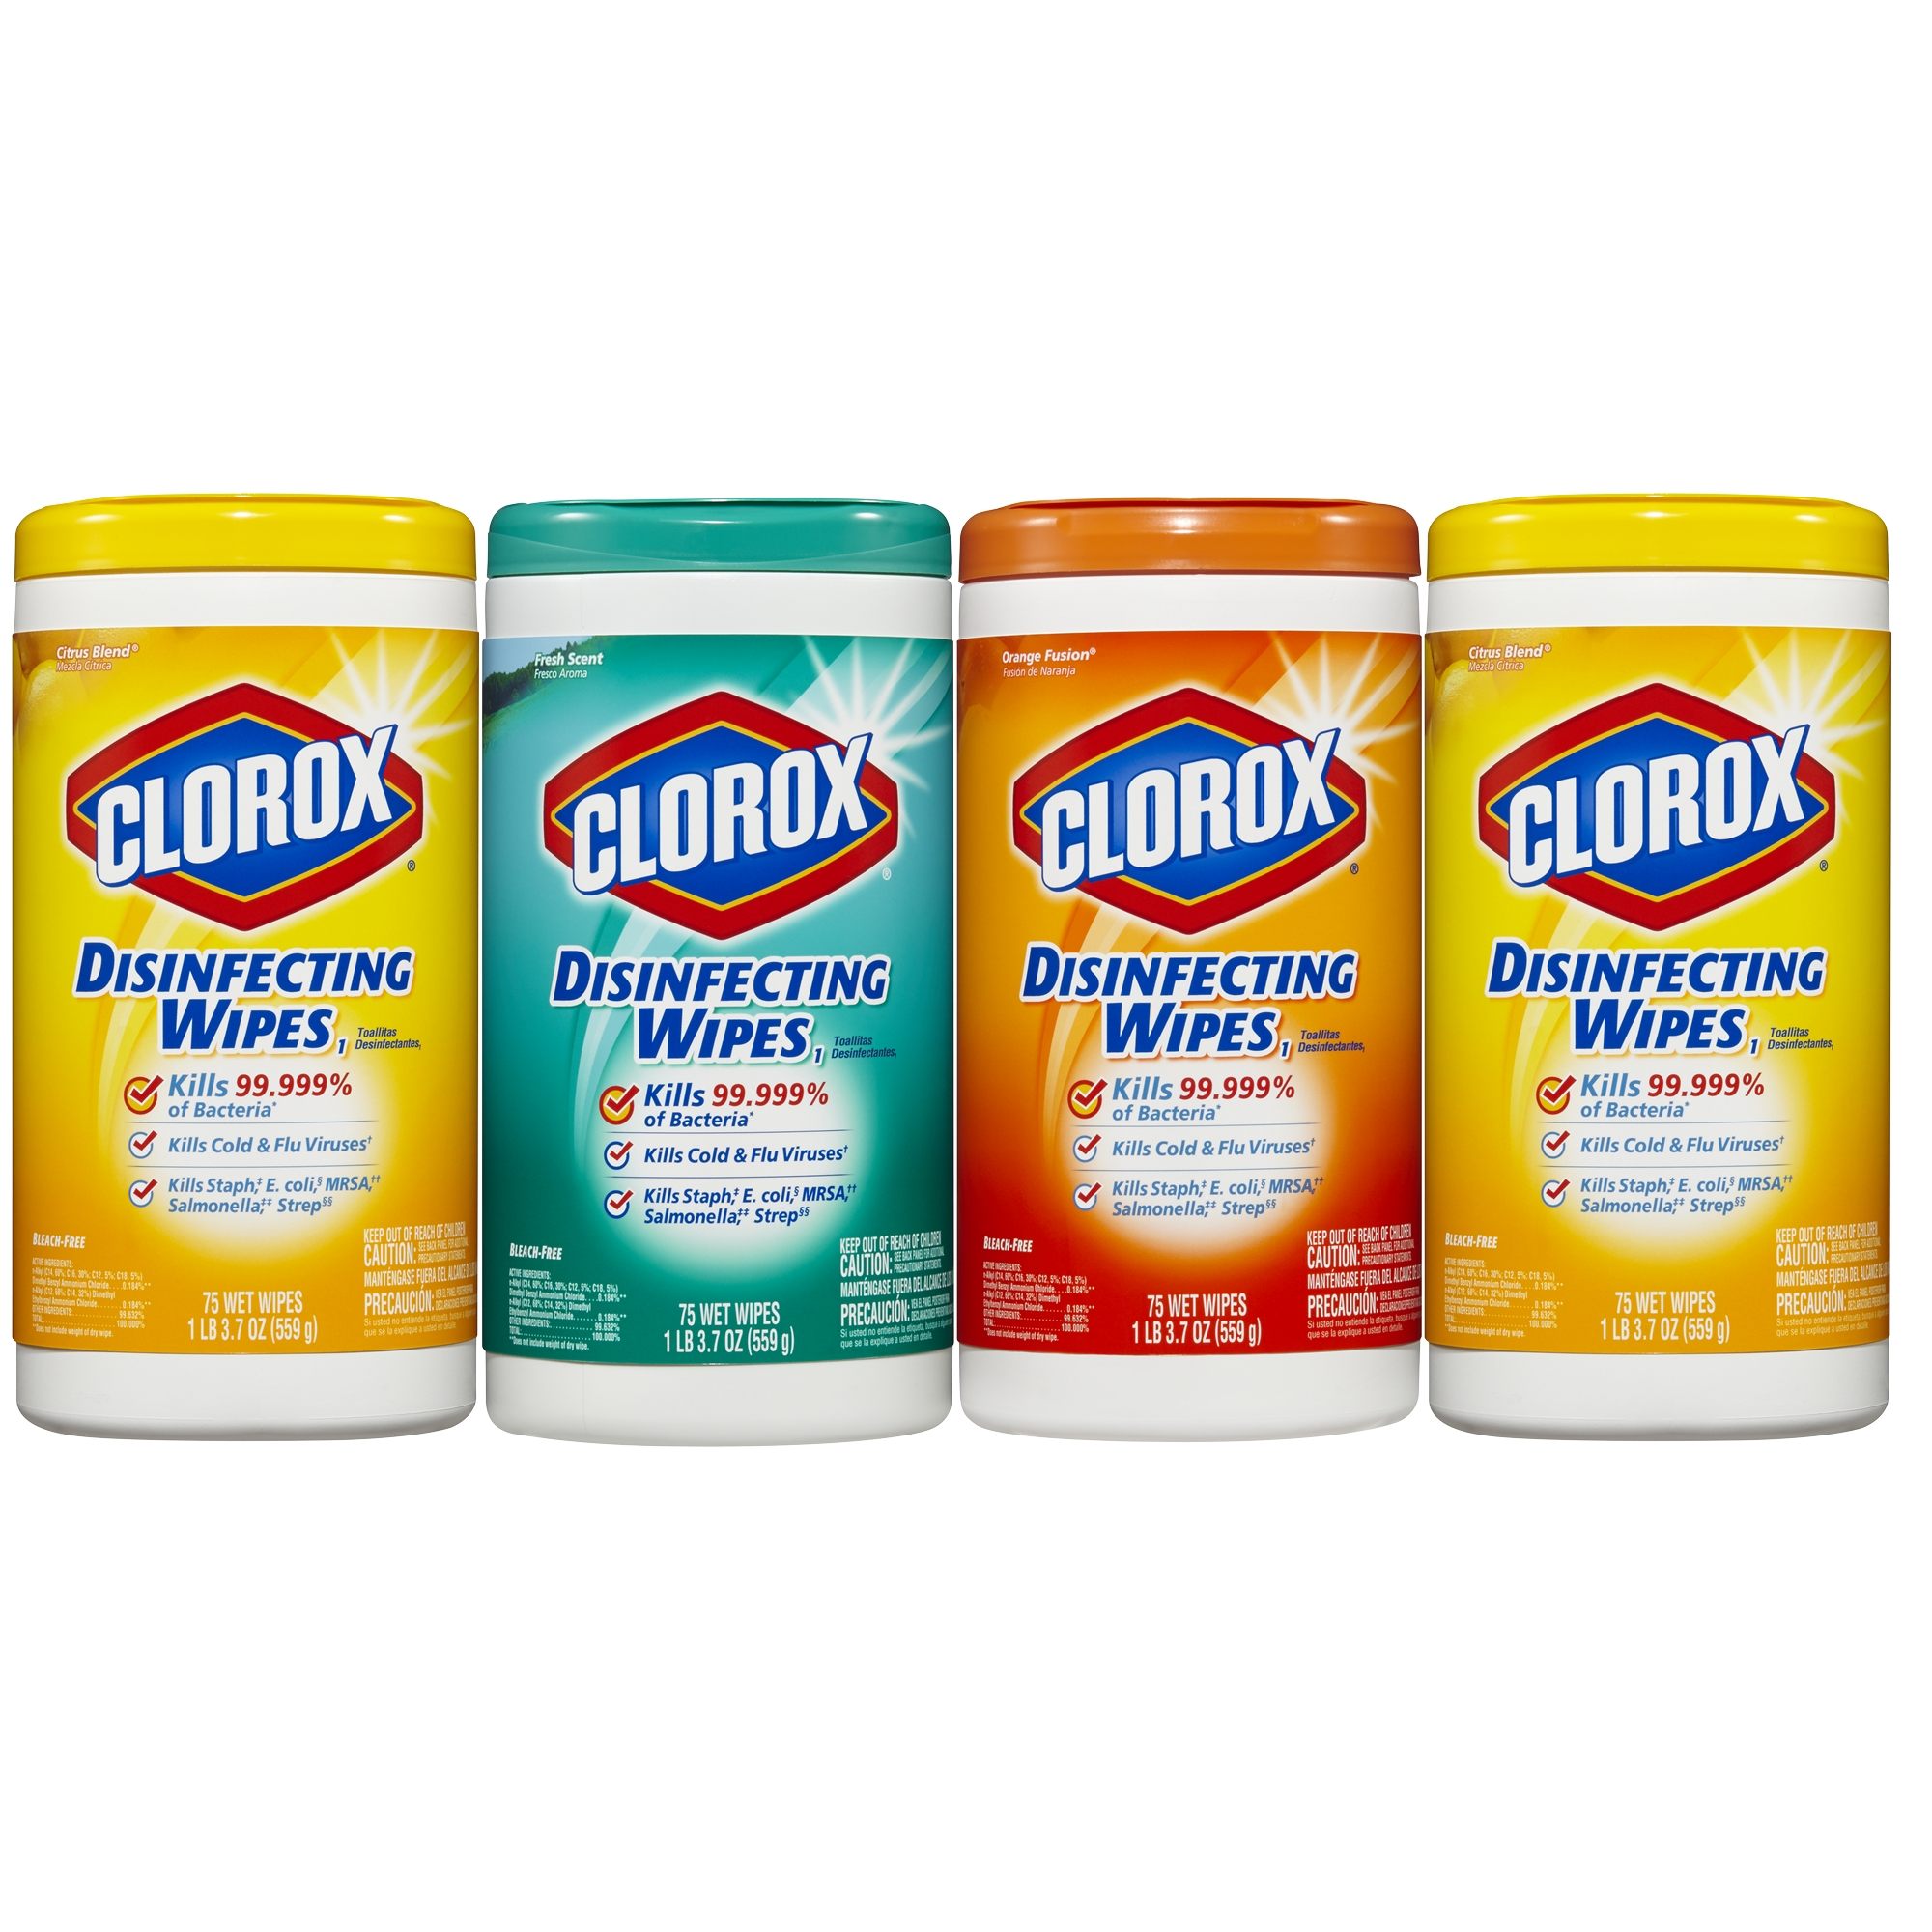 Clorox Disinfecting Wipes Value Pack, Scented, 300 Count